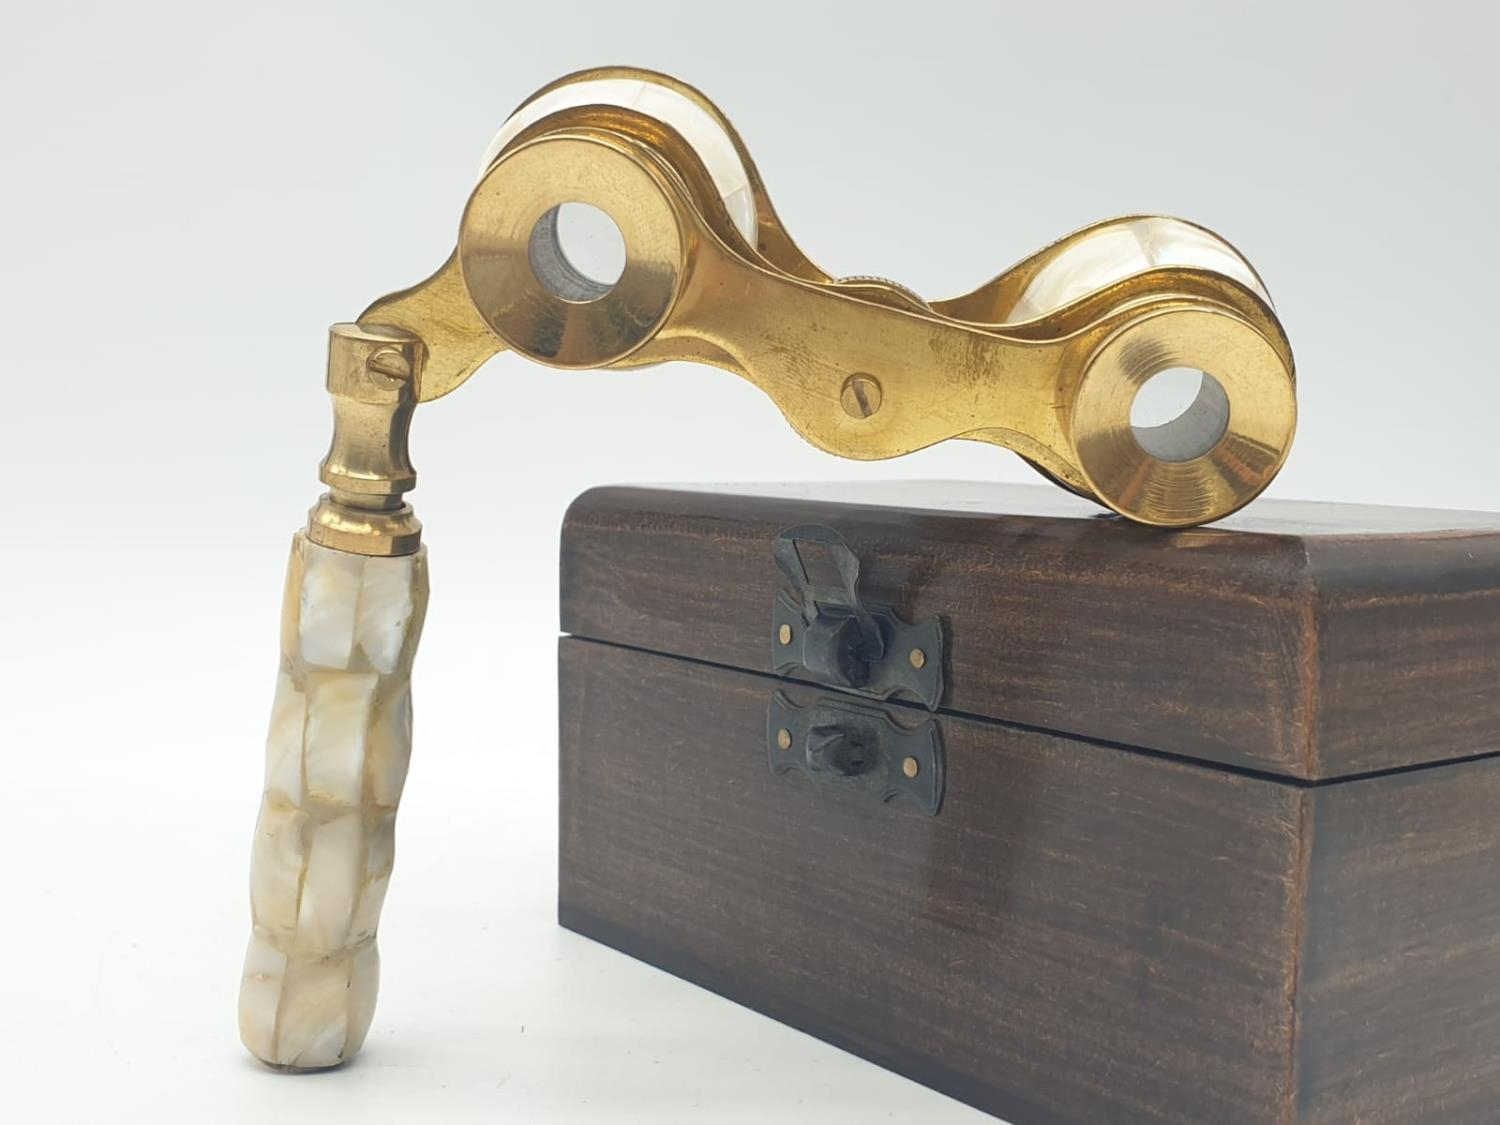 1920's Mother of Pearl & Brass opera glasses with folding handle, in wooden box. 13x7cm. - Image 7 of 9